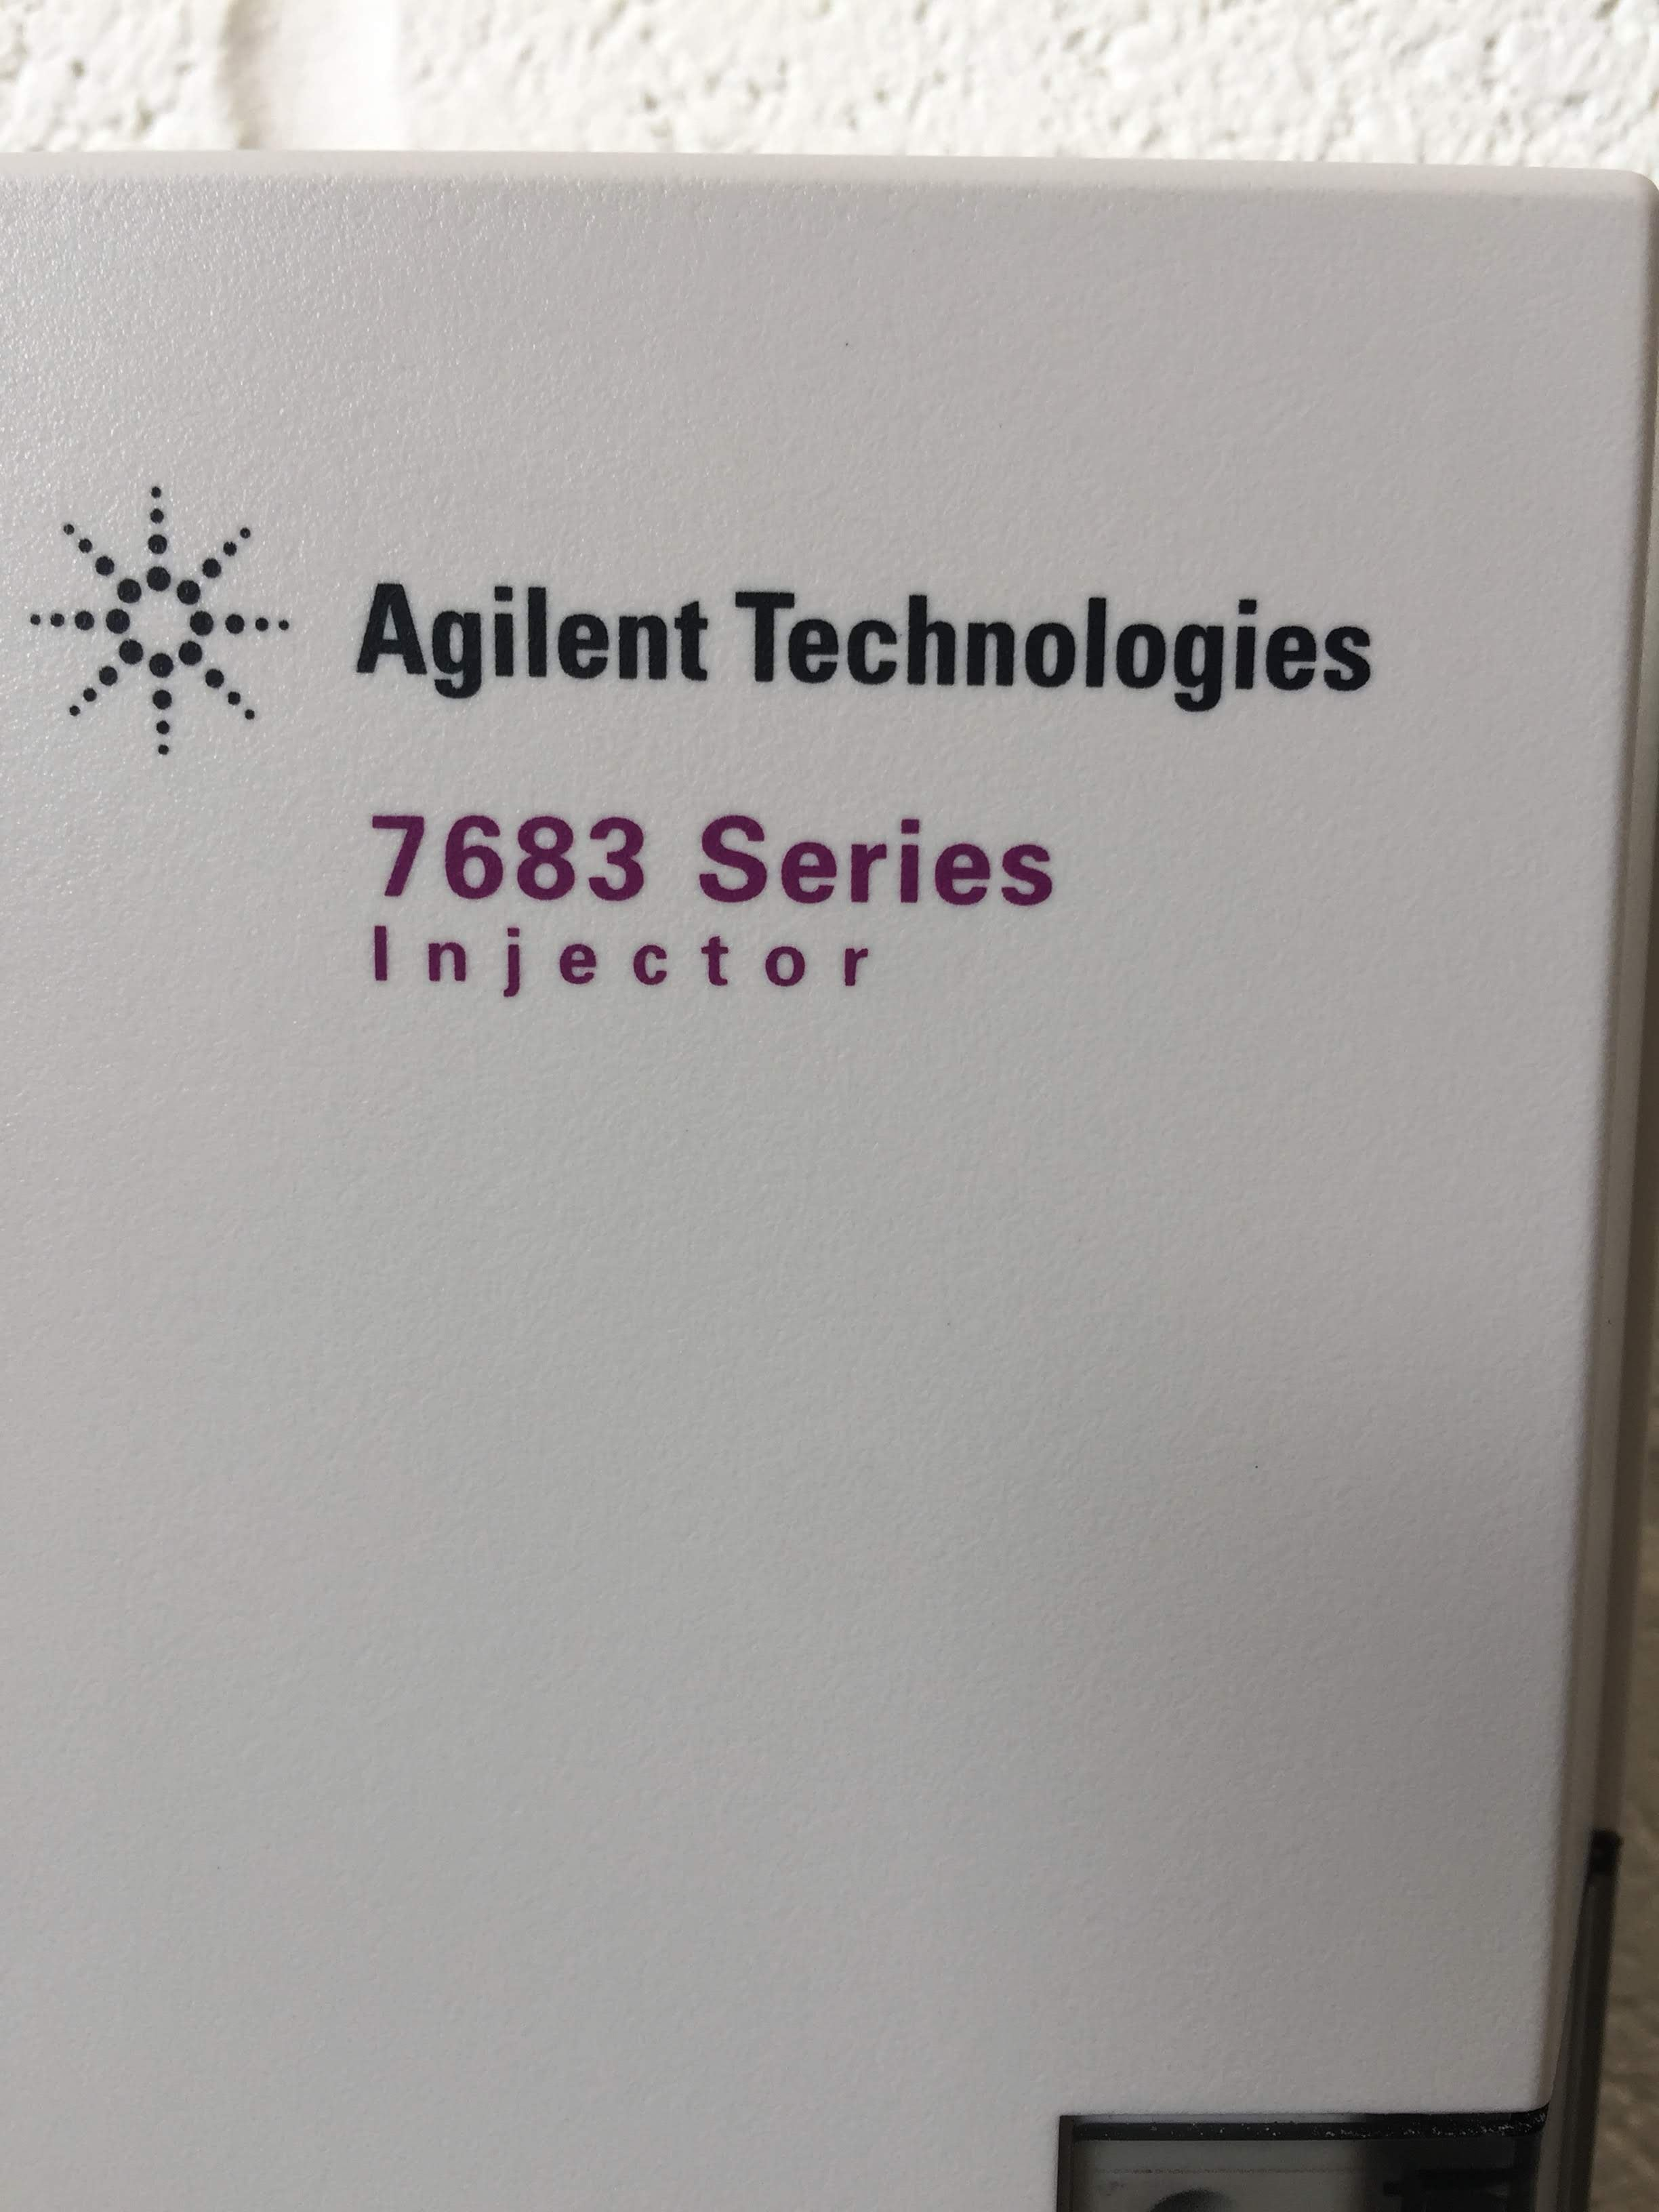 Agilent 7683 Series Injector